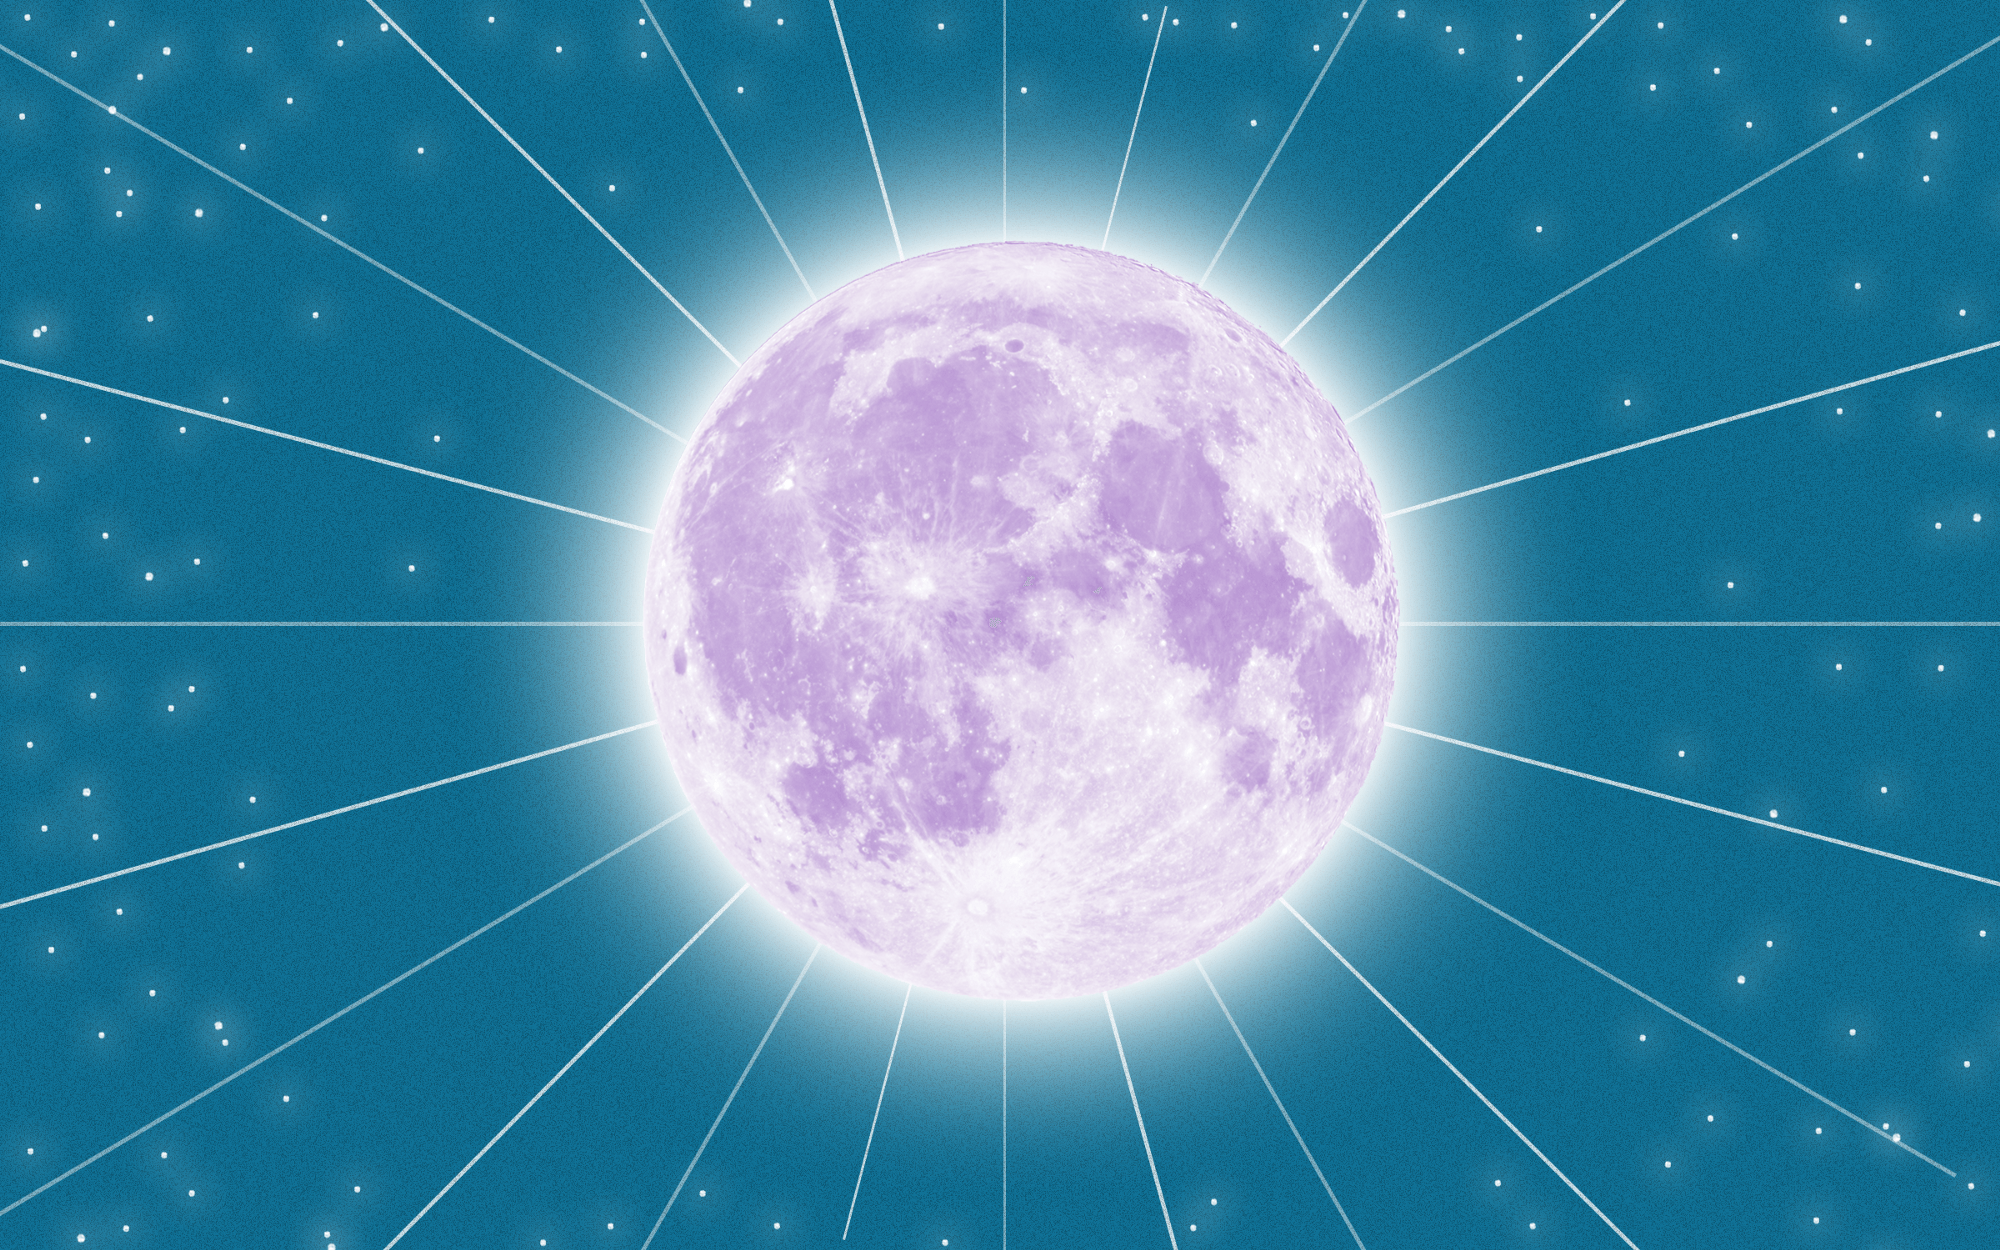 A photo illustration of a full moon against a dark azure sky with small white star lights.